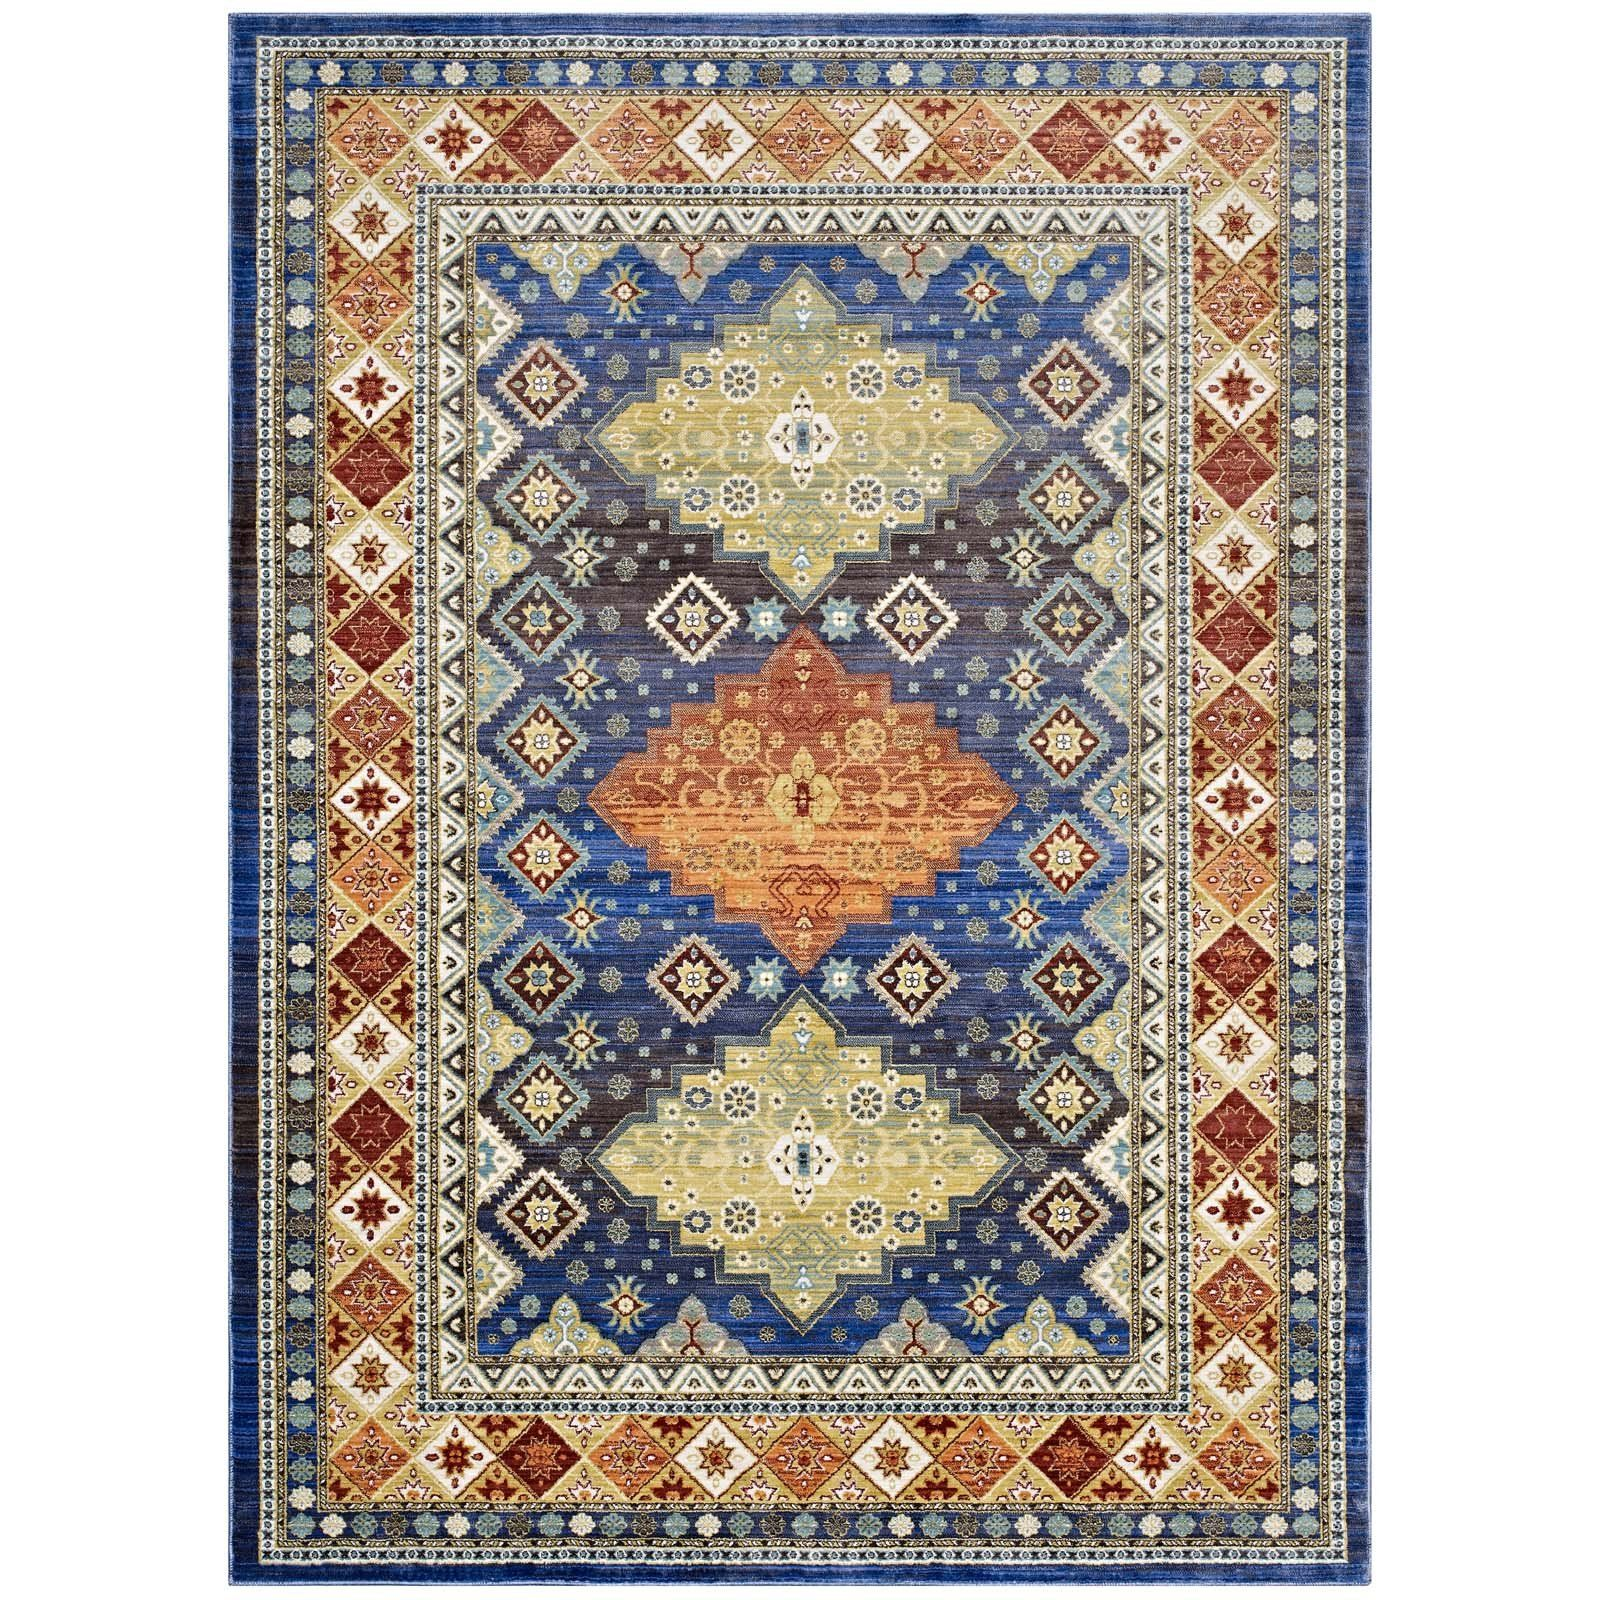 Modway Rugs On Sale R 1117a 810 Atzi Distressed Southwestern Diamond Floral 8x10 Area Rug Only Only 341 75 Floral Area Rugs 8x10 Area Rugs Area Rugs